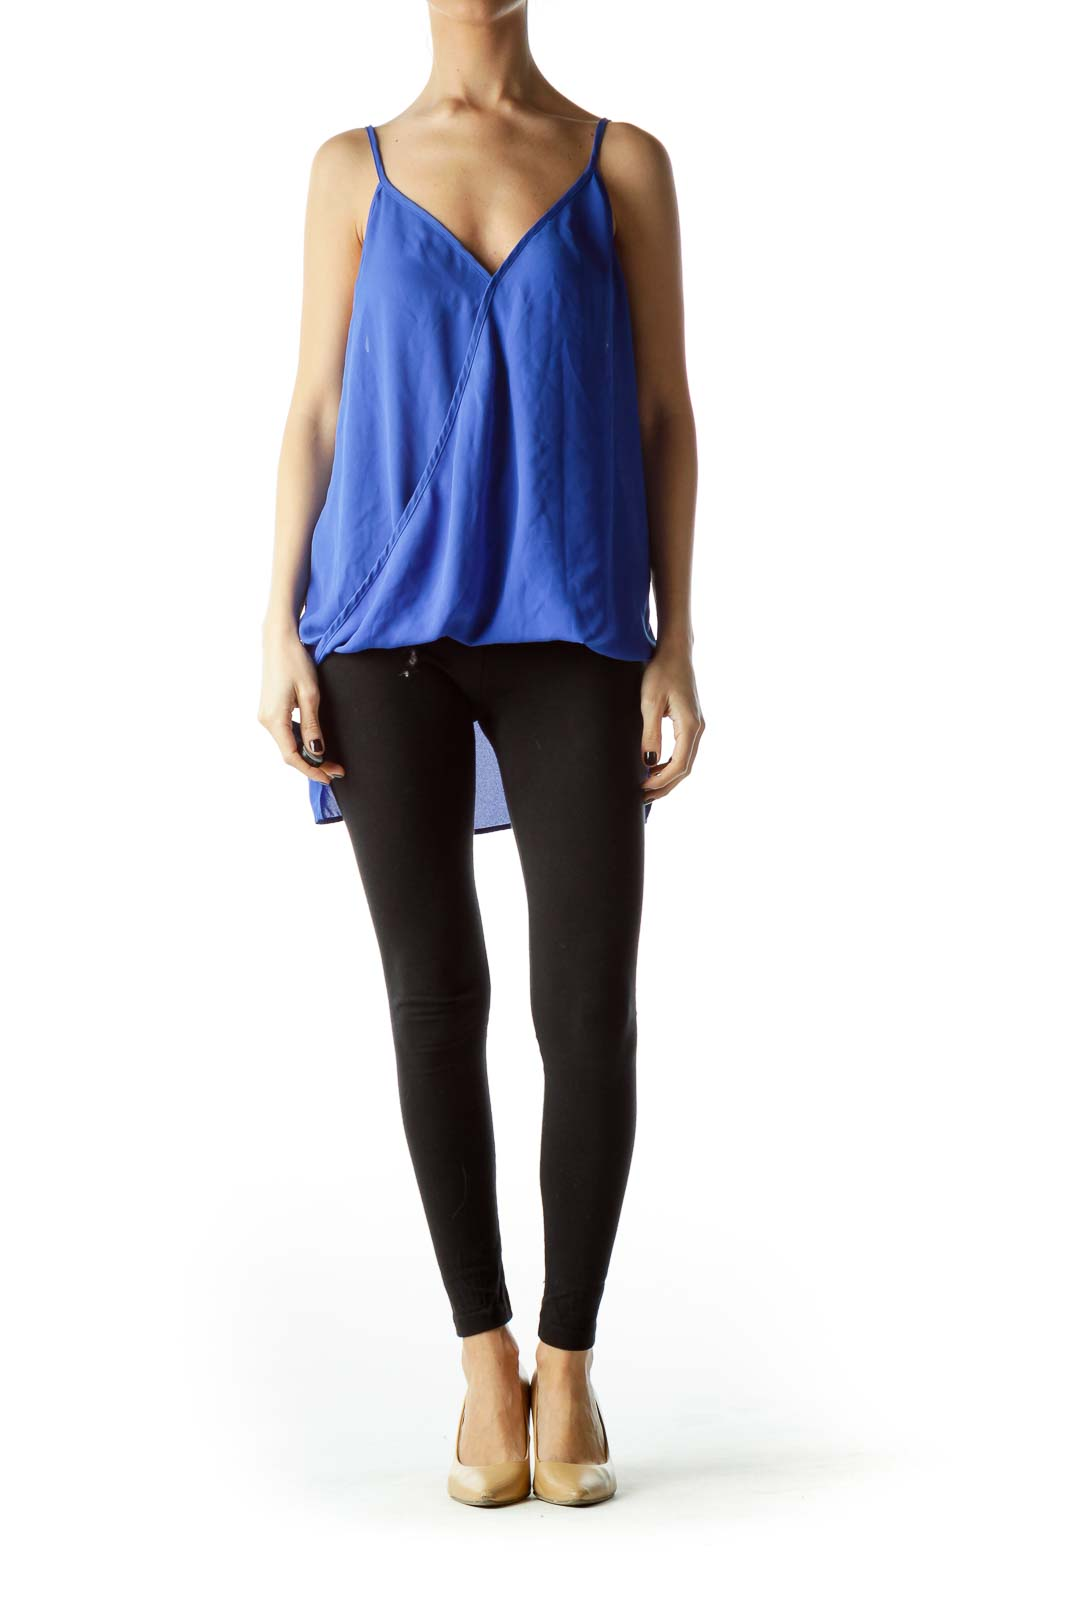 Electric Blue Spaghetti Straps Flared Top